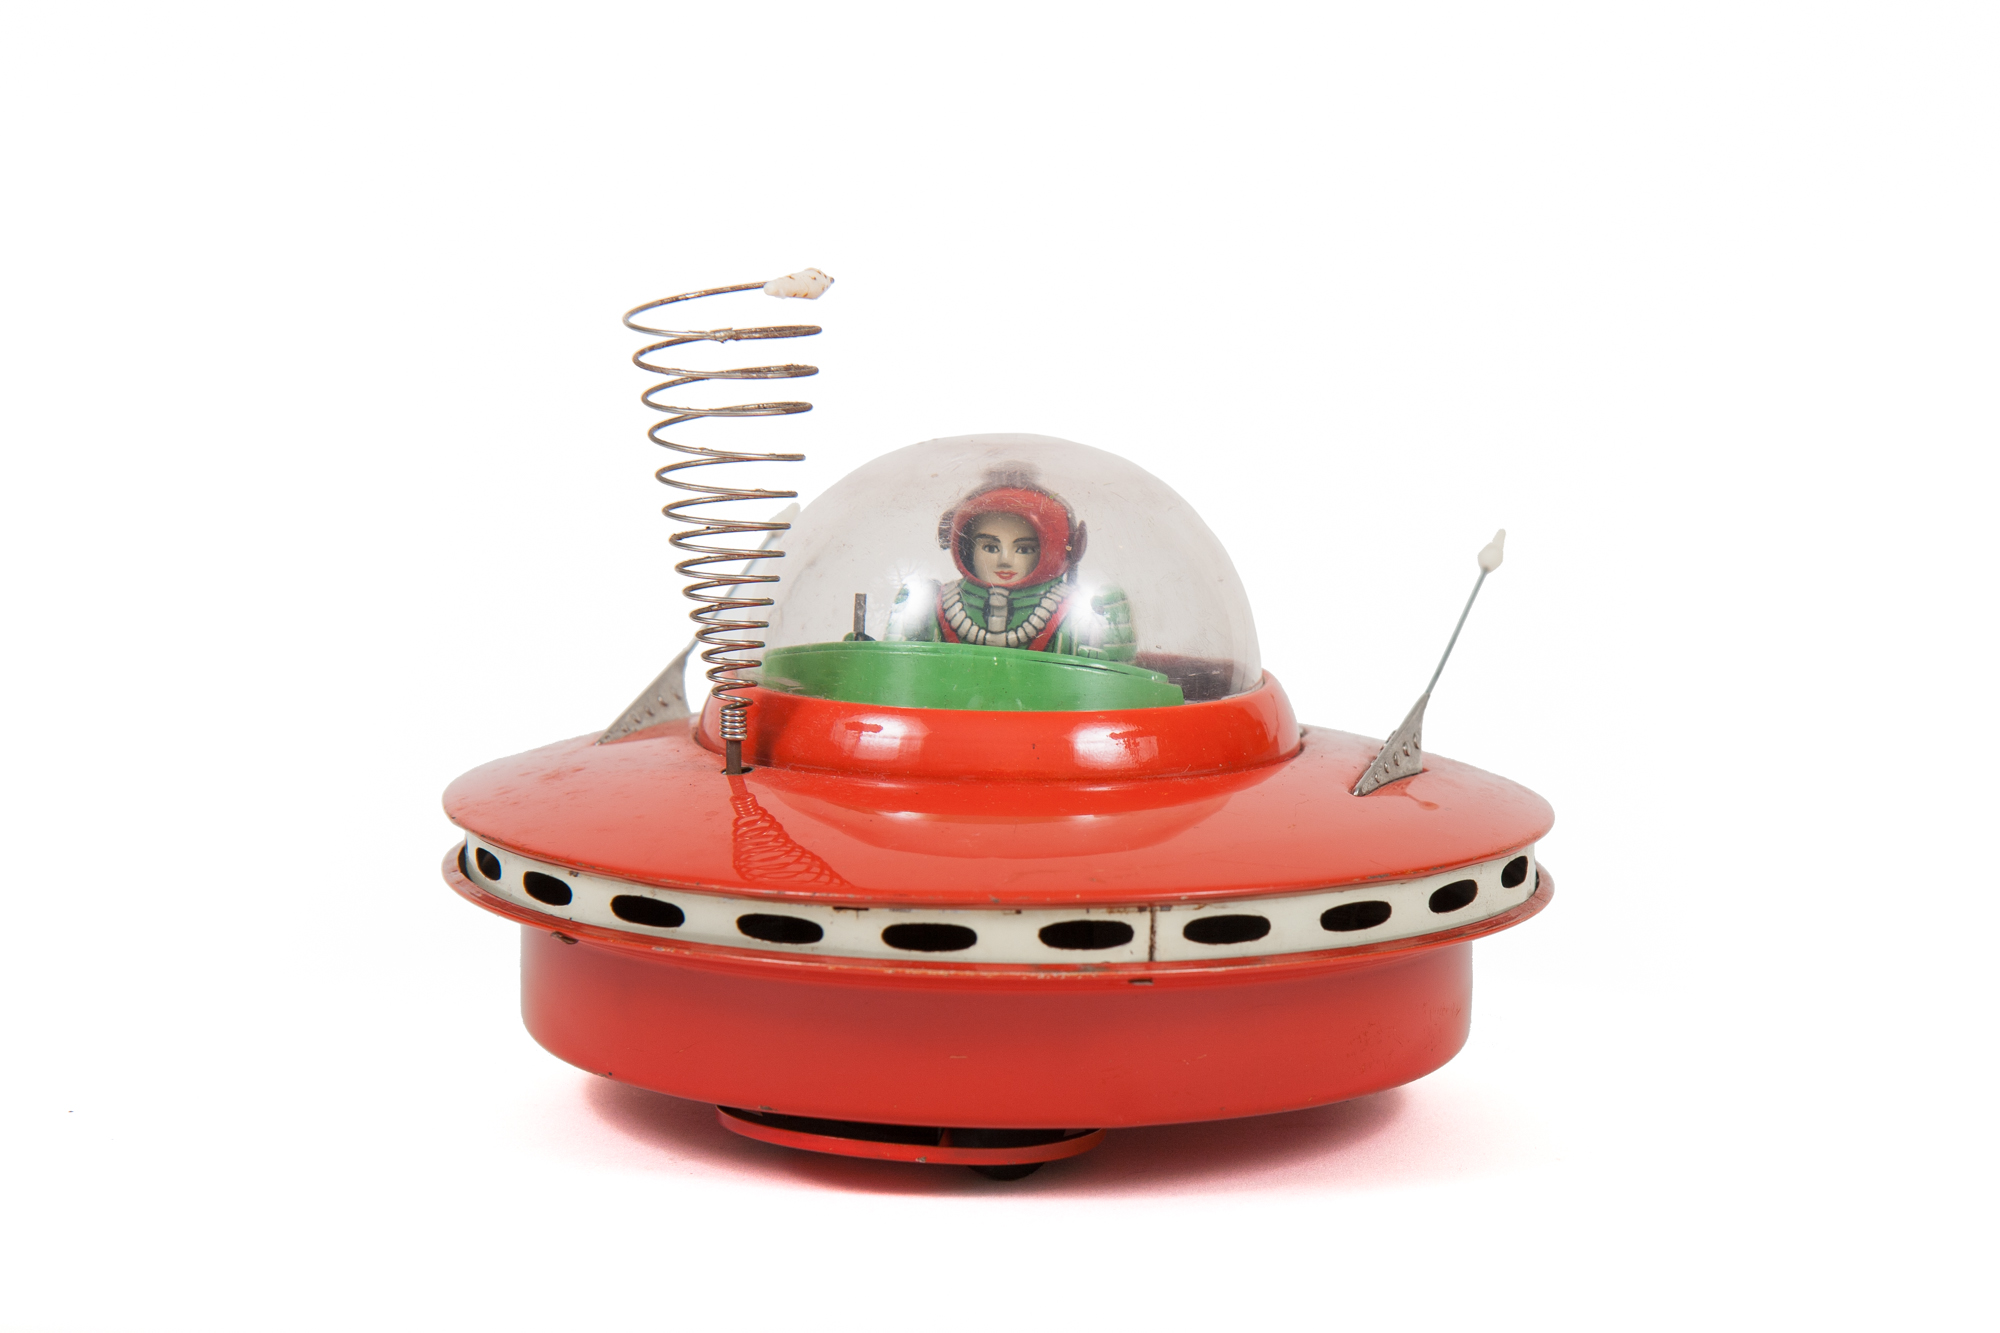 Flying Saucer with Space Pilot Tin Toy (Cragston-Yoshiya Japan circa 1959)